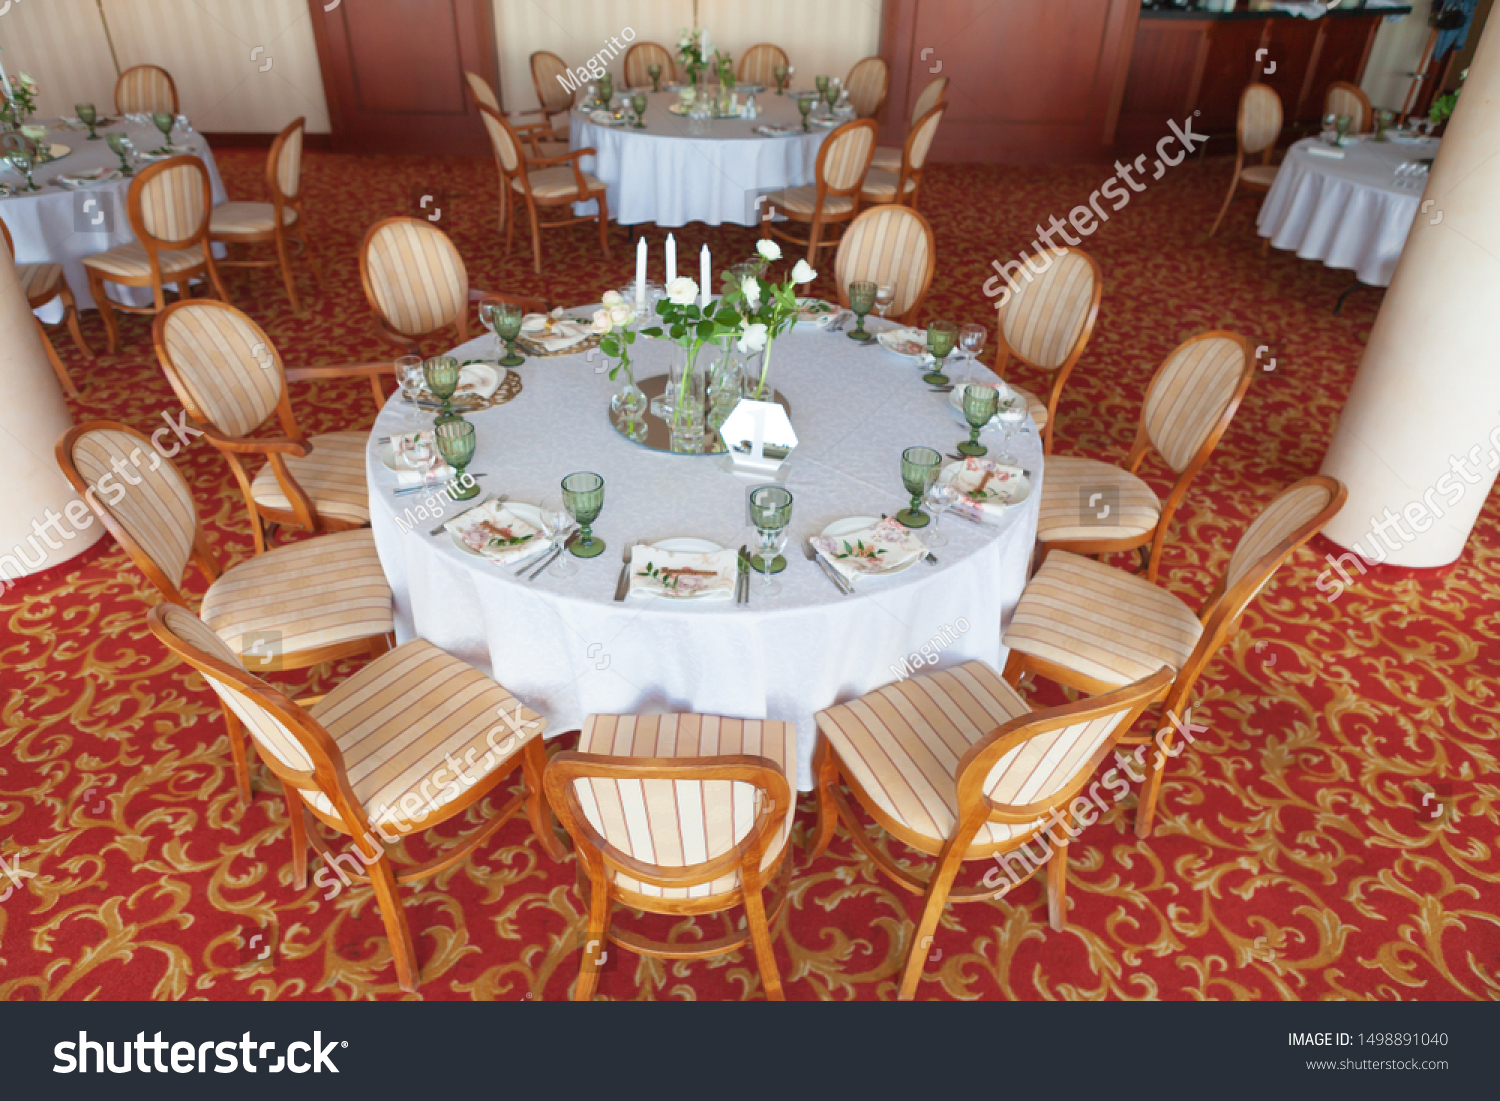 Round Dining Tables Covered White Cloth Stock Photo Edit Now 1498891040